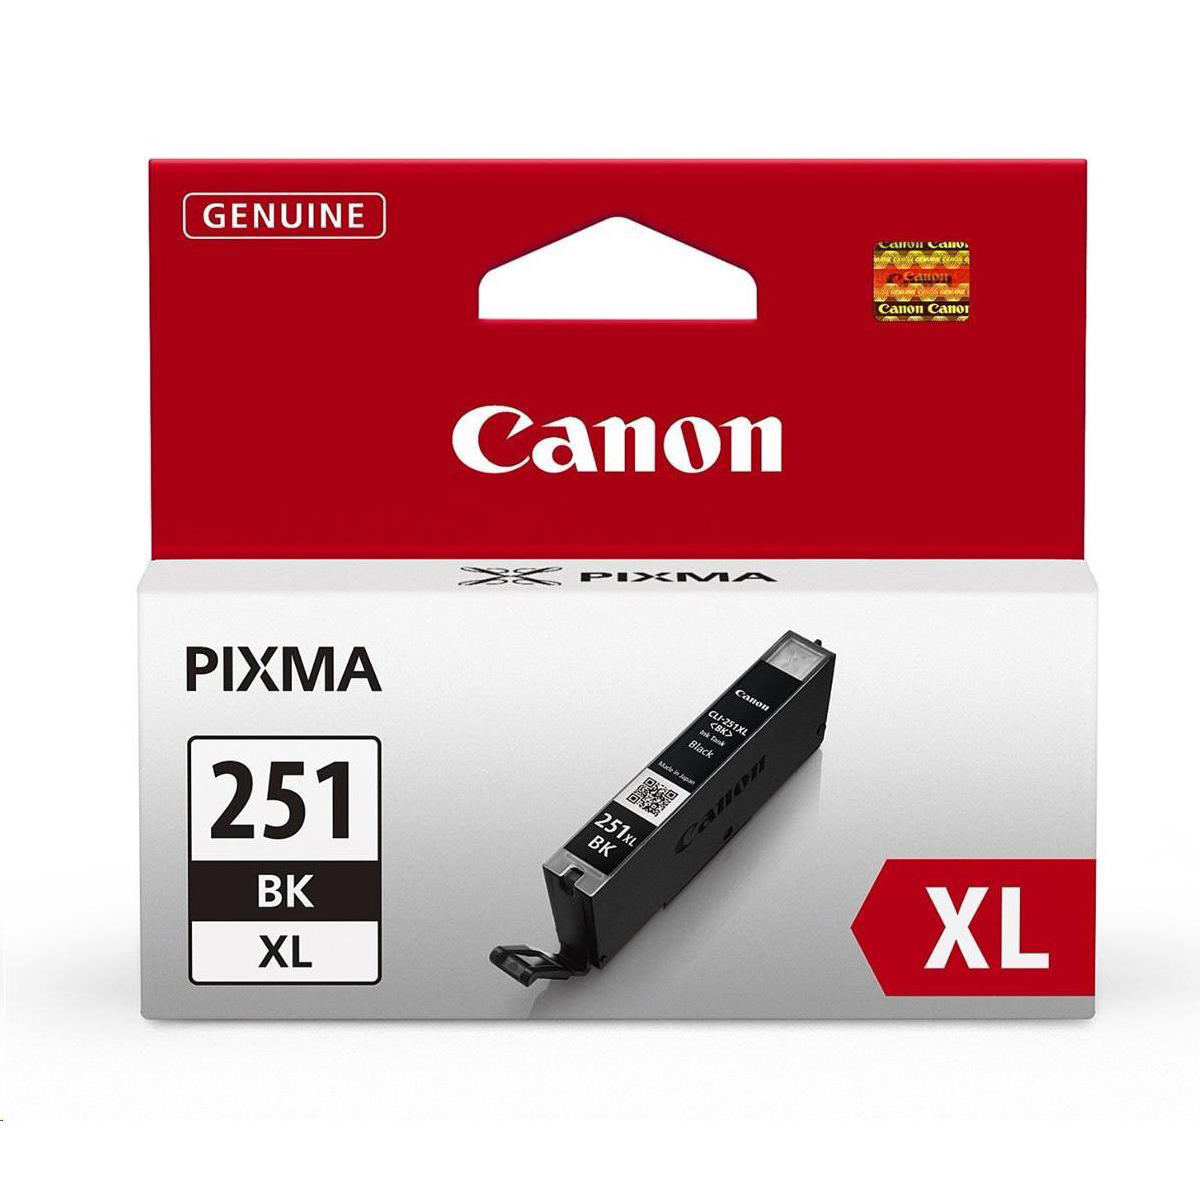 Canon CLI-571XL Inkjet Cartridge High Yield Page Life 850pp 11ml Black Ref 0331C001